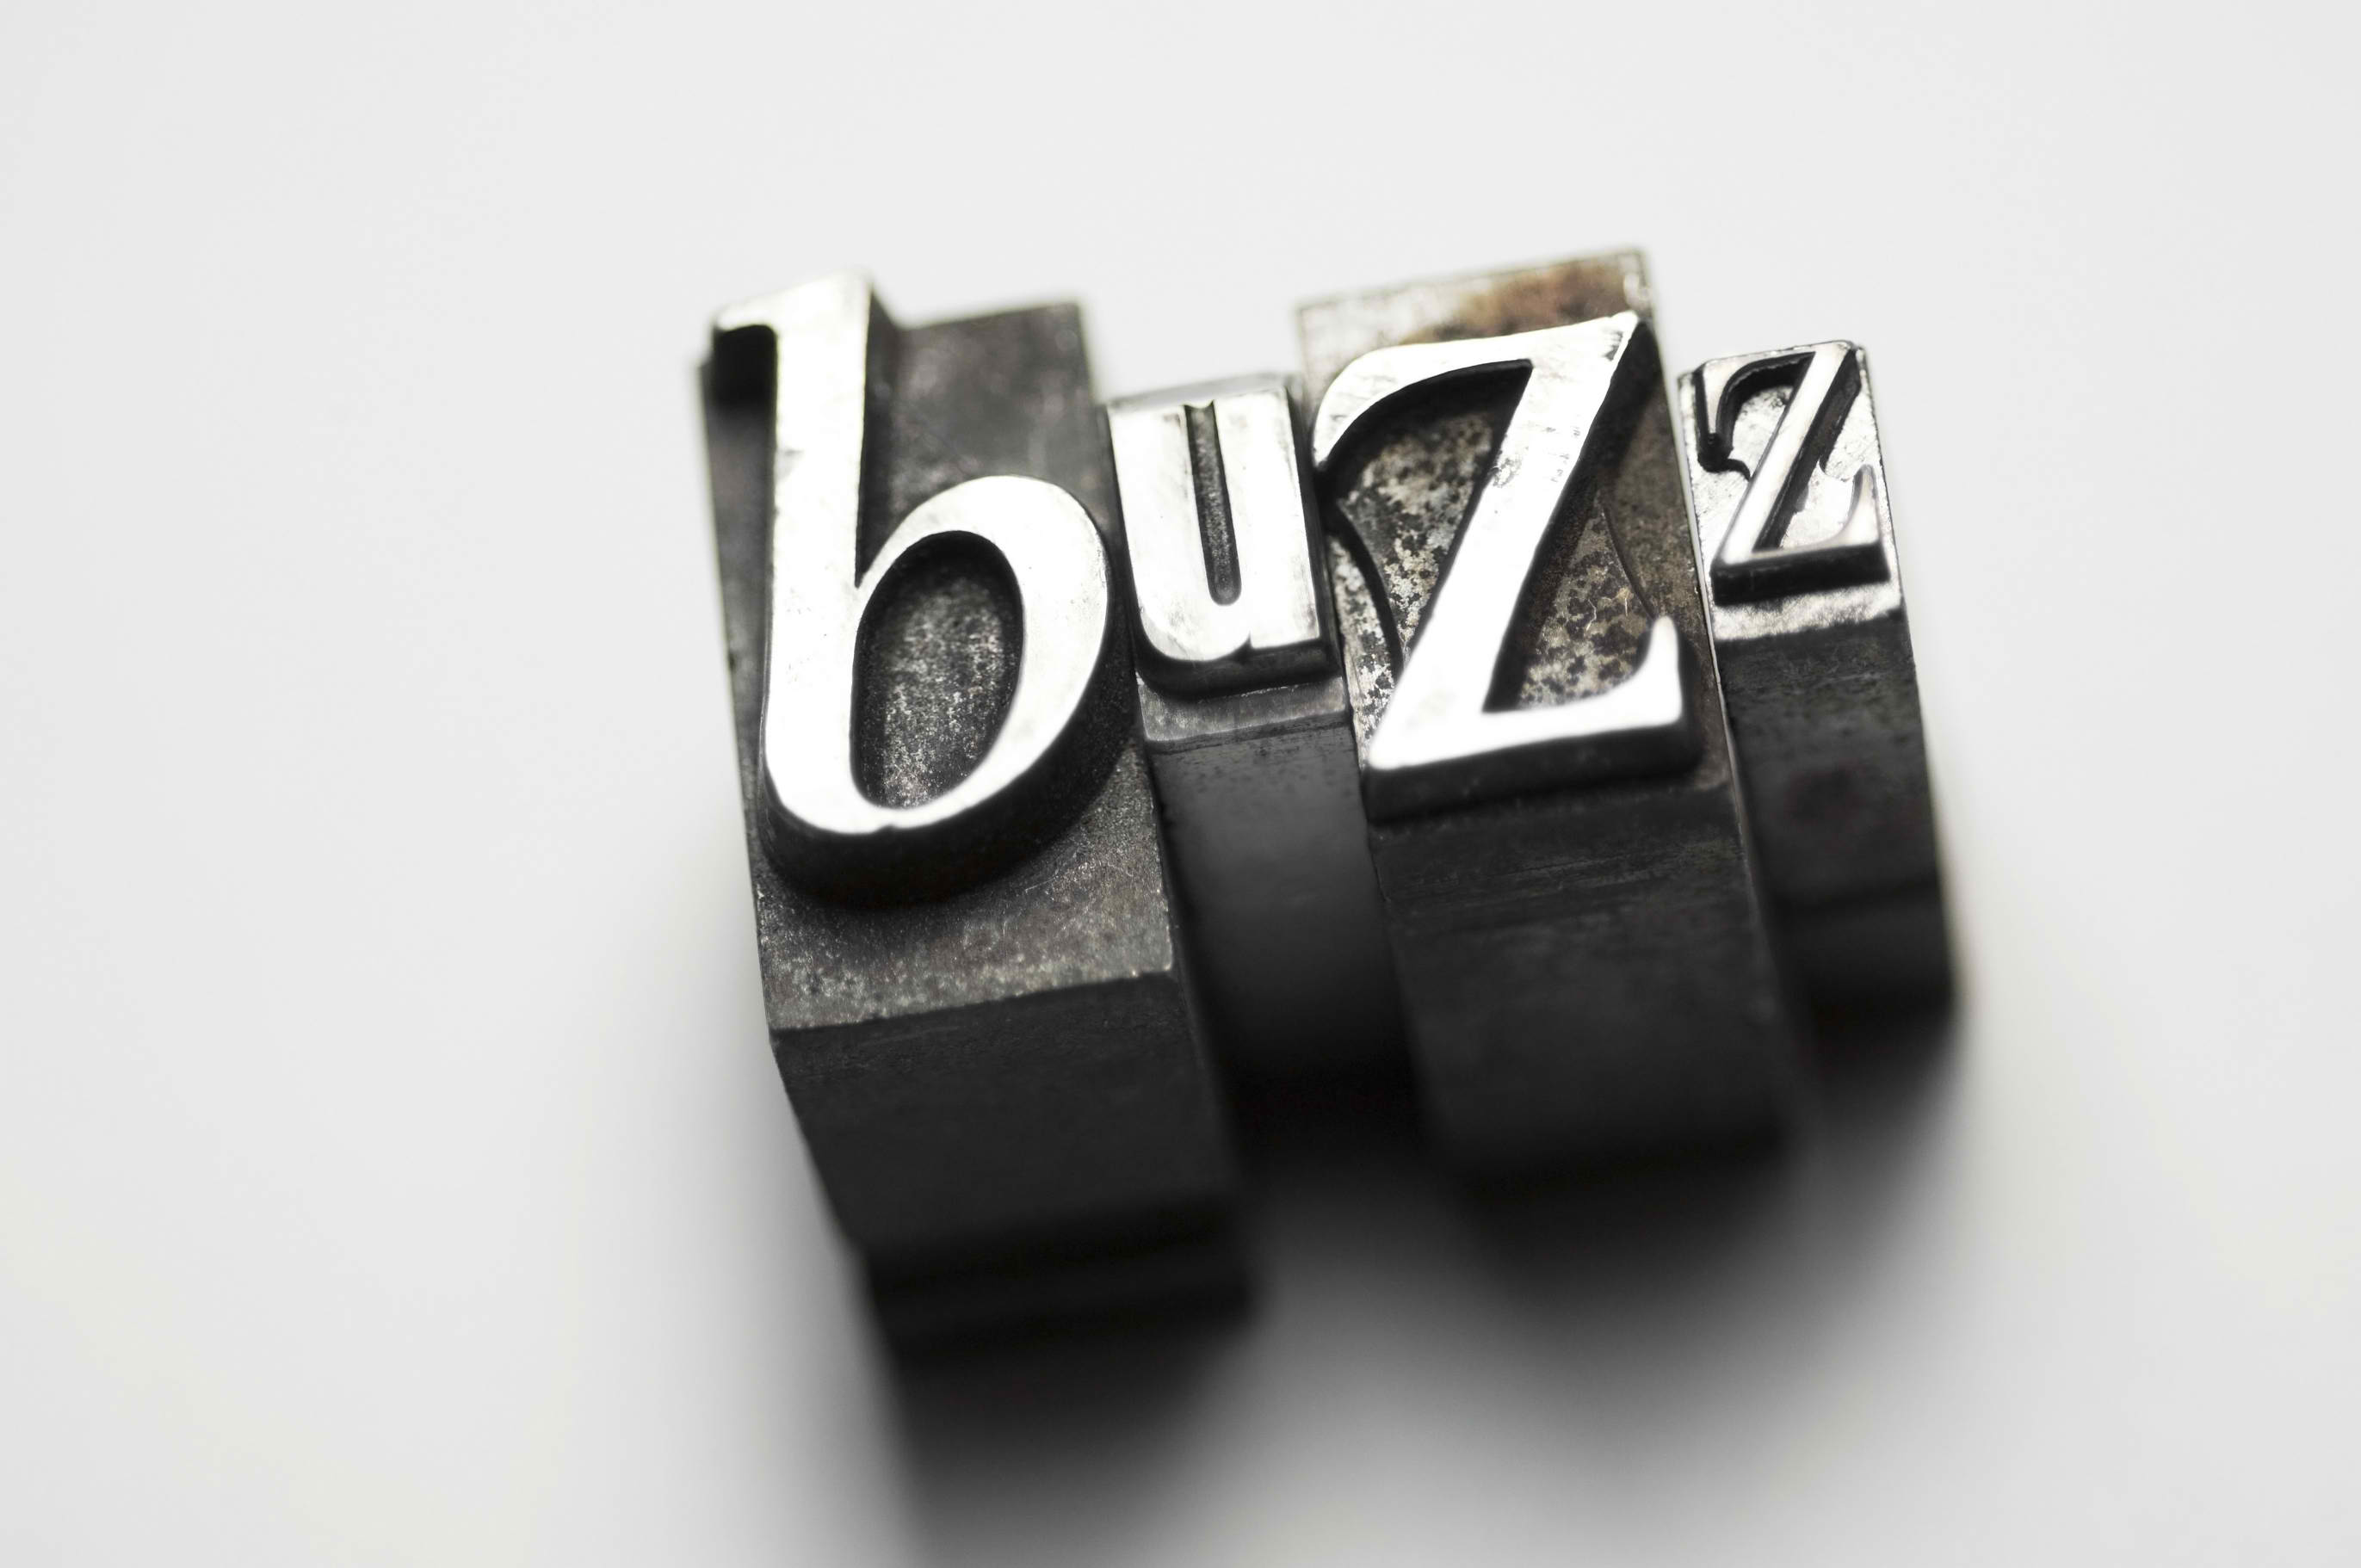 Want a Buzzworthy Brand? Avoid Too Much Controversy